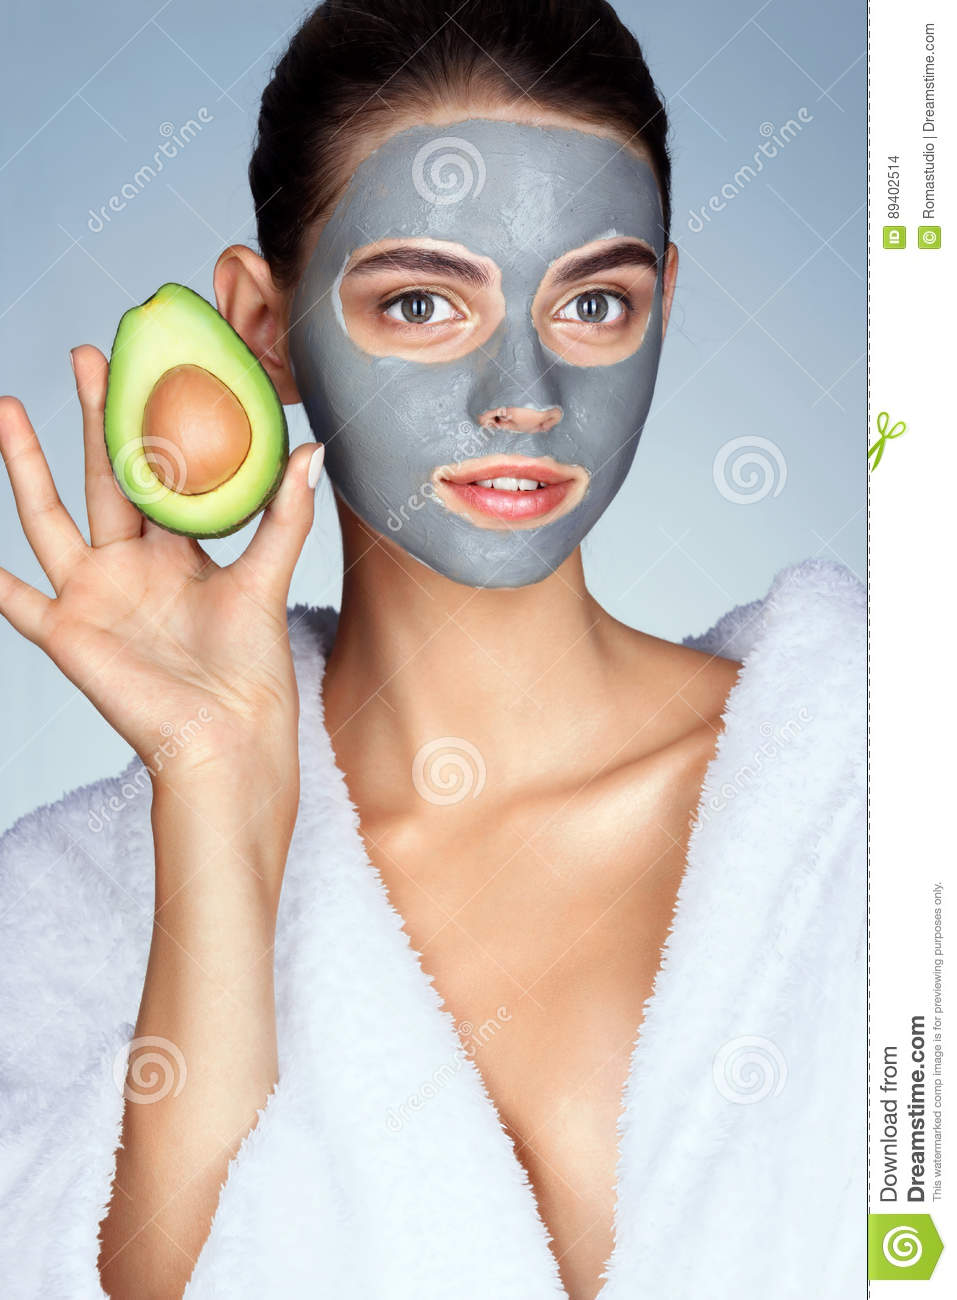 Attractive woman holding half an avocado in hand.